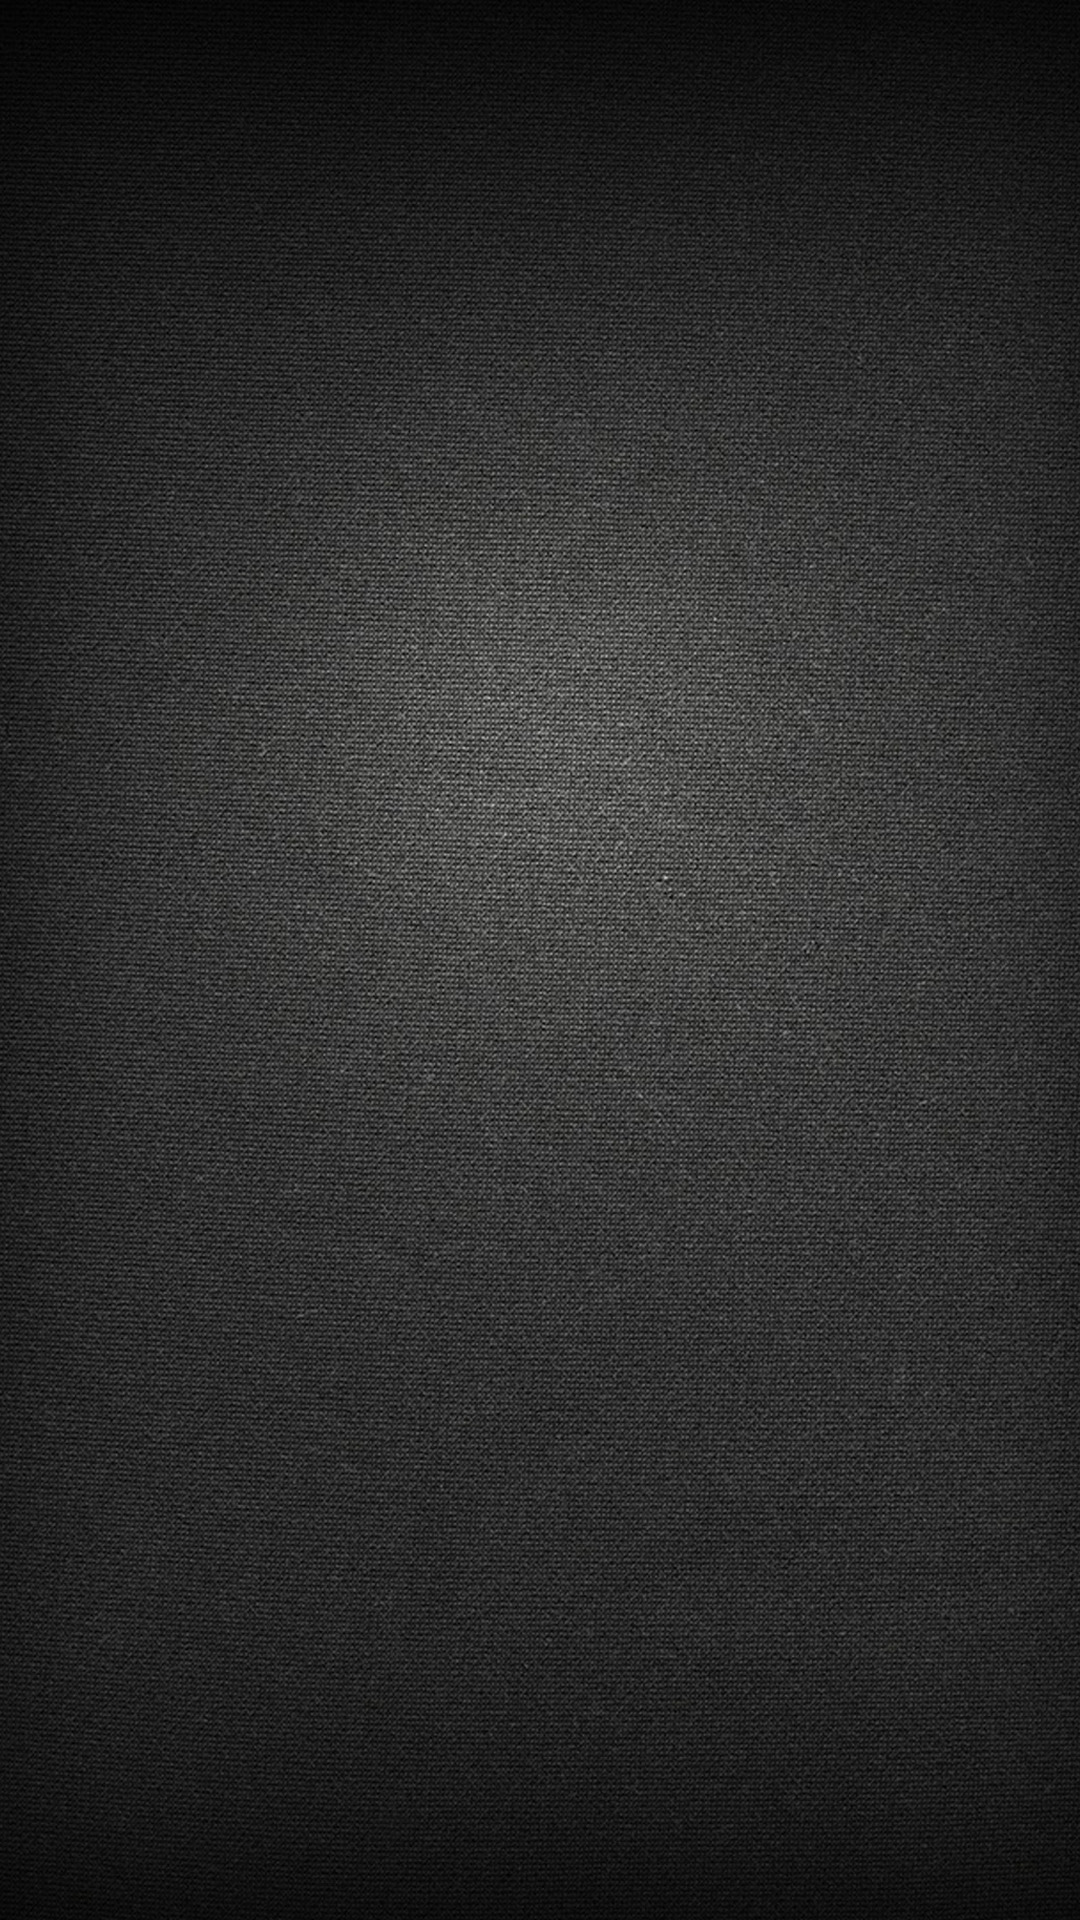 Samsung Dark Wallpaper